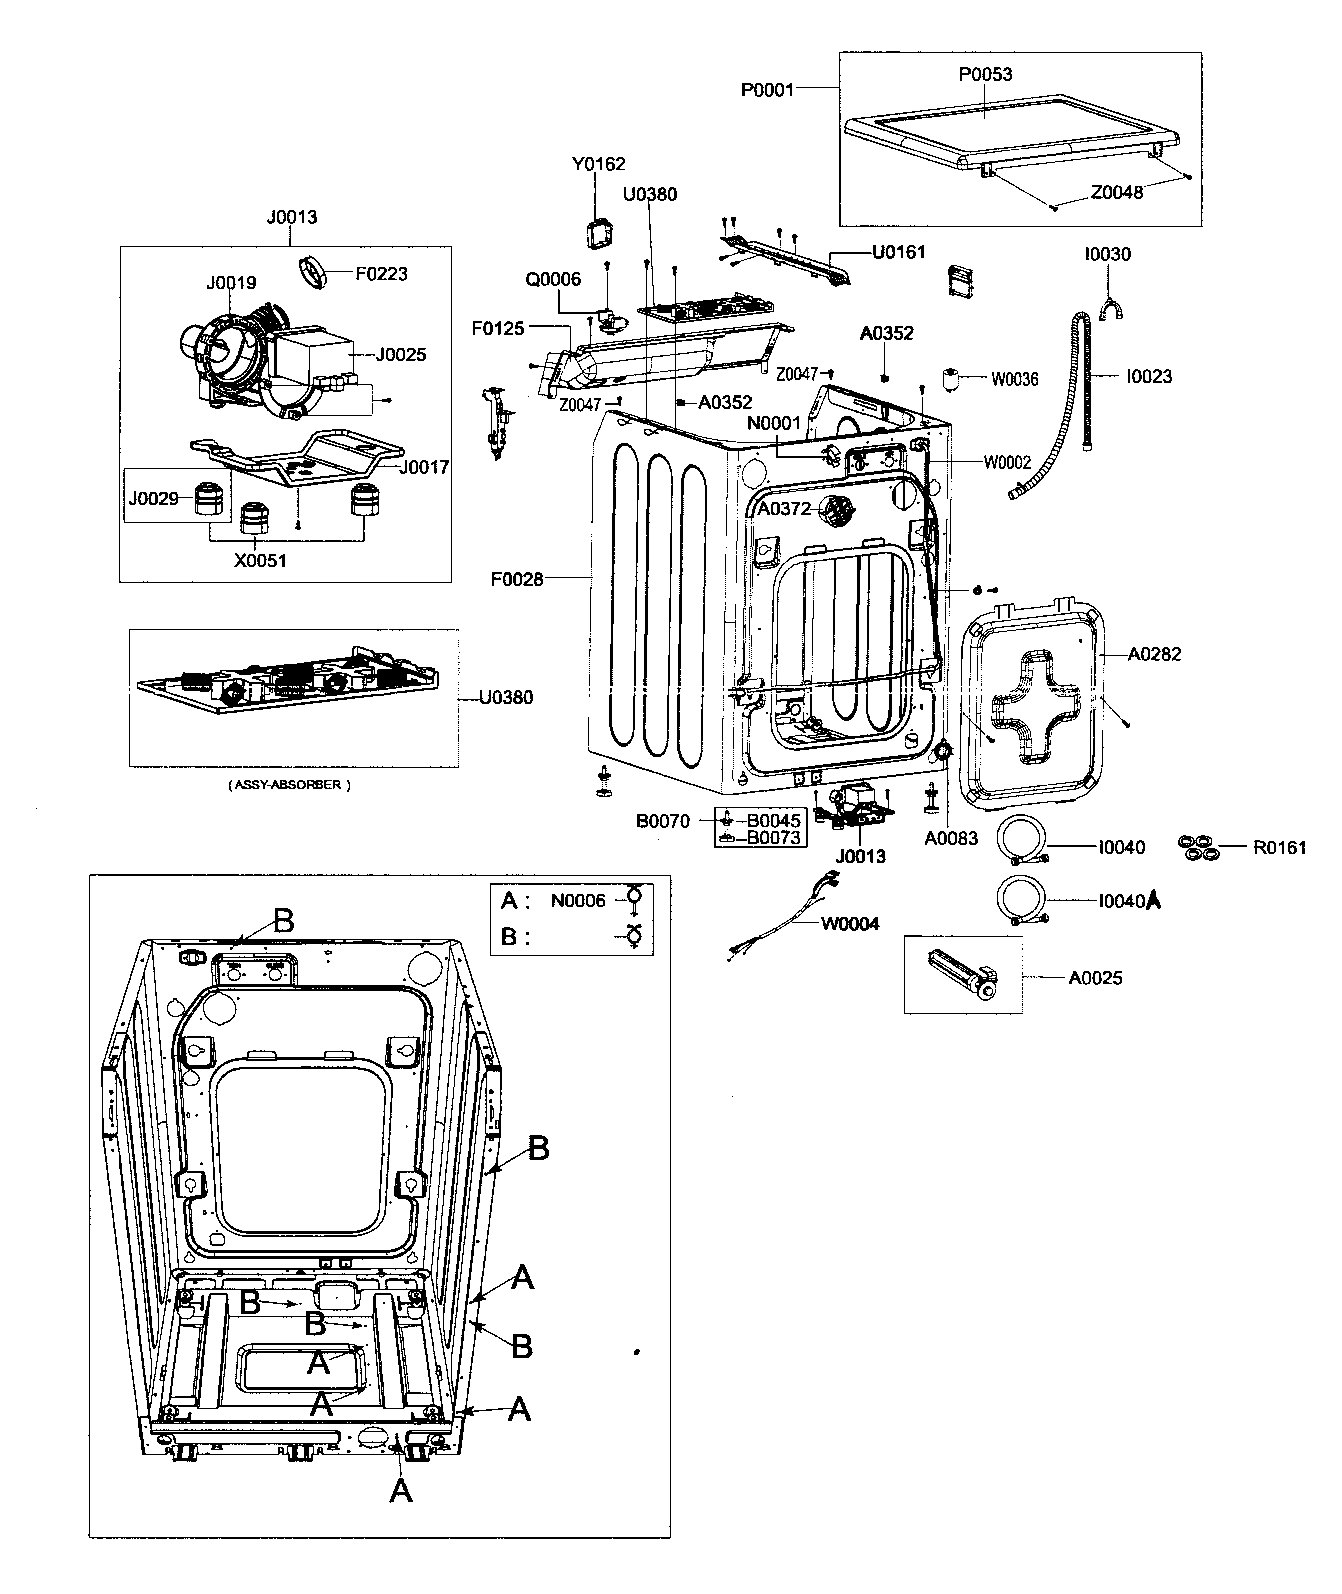 FRAME ASSY Diagram & Parts List for Model wf206ansxac